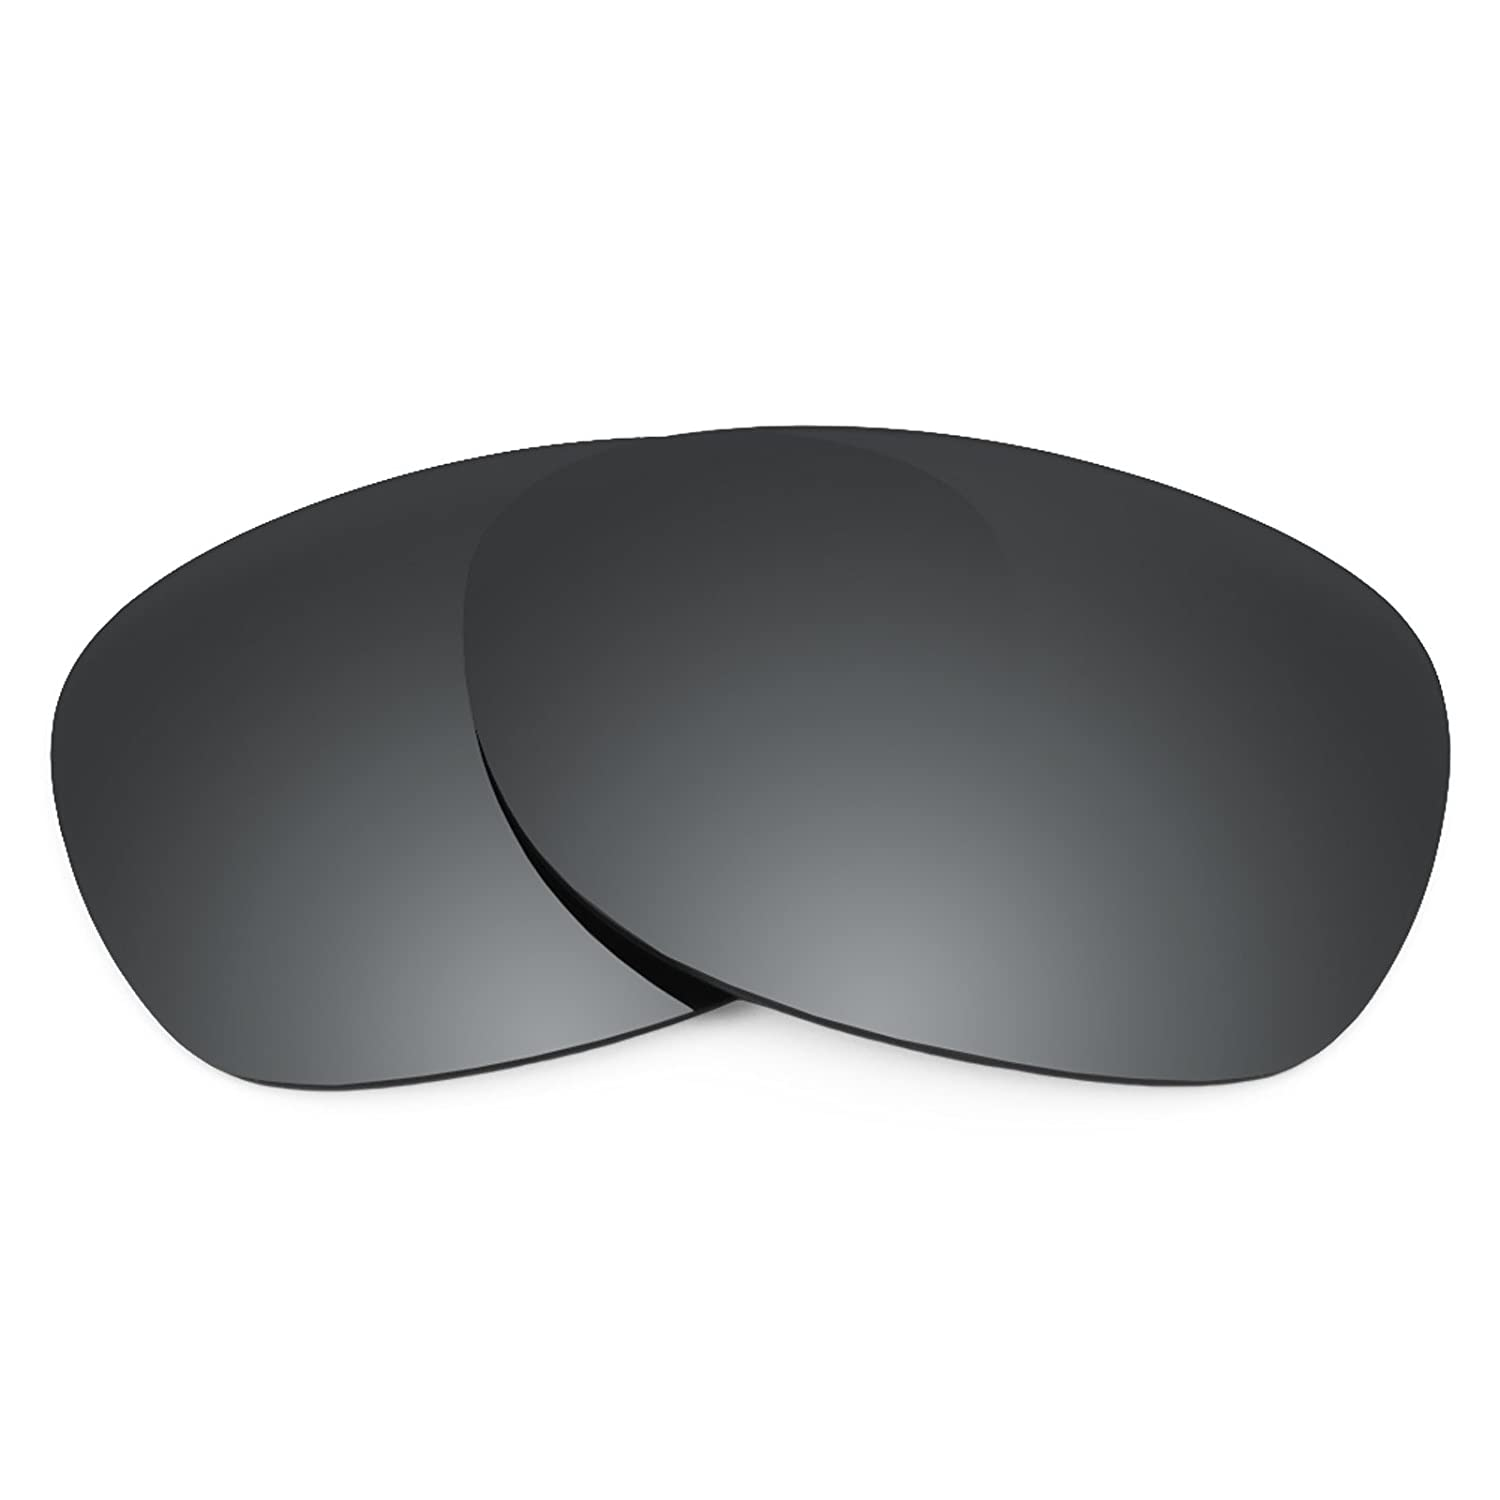 4b1a5b33d26bd Amazon.com  Revant Polarized Replacement Lenses for Ray-Ban New Wayfarer  RB2132 52mm Elite Black Chrome MirrorShield  Sports   Outdoors